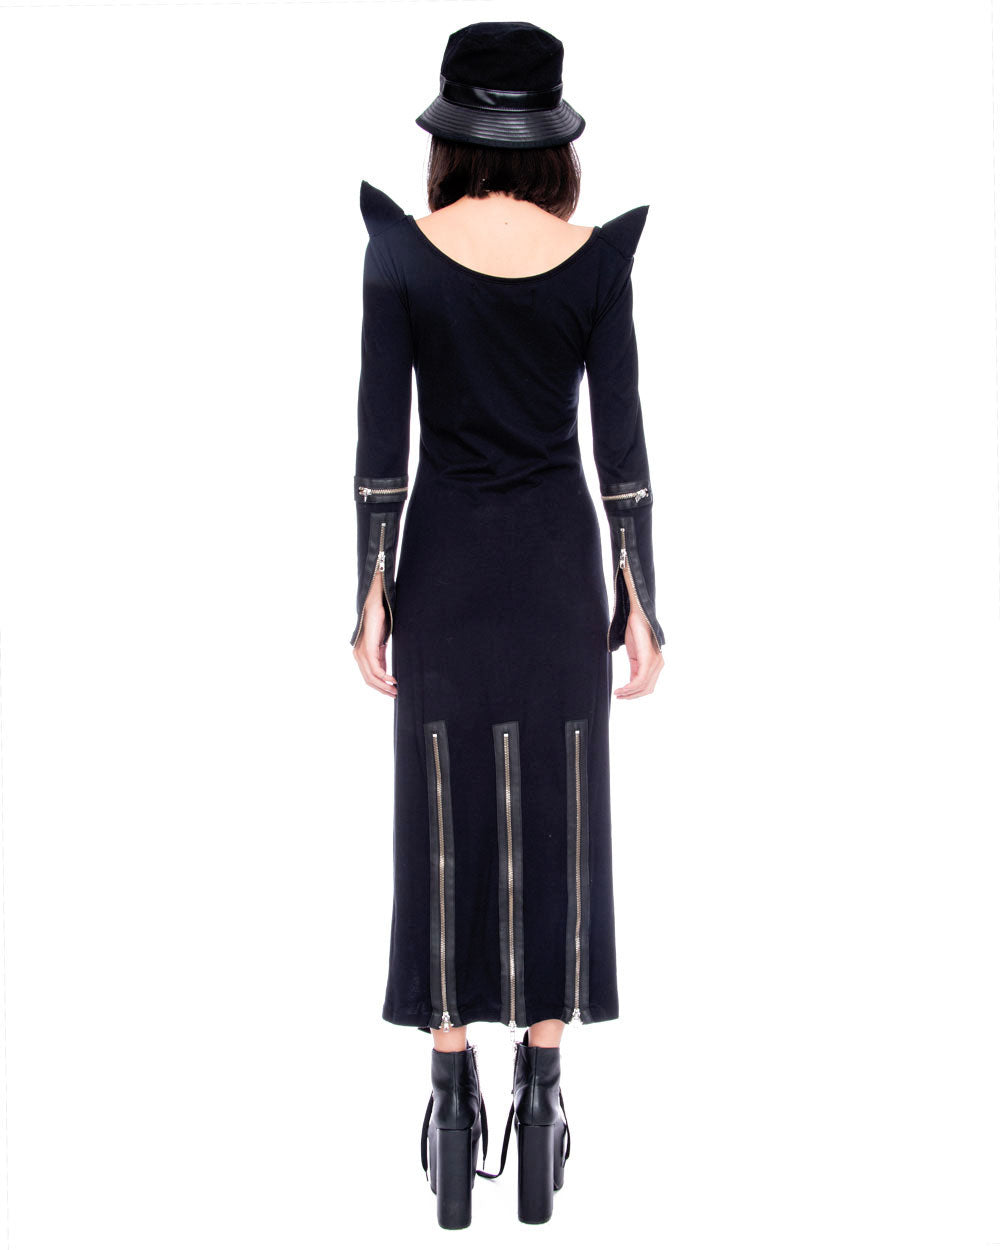 HORNS AND ZIPPERS DRESS - Eros Mortis